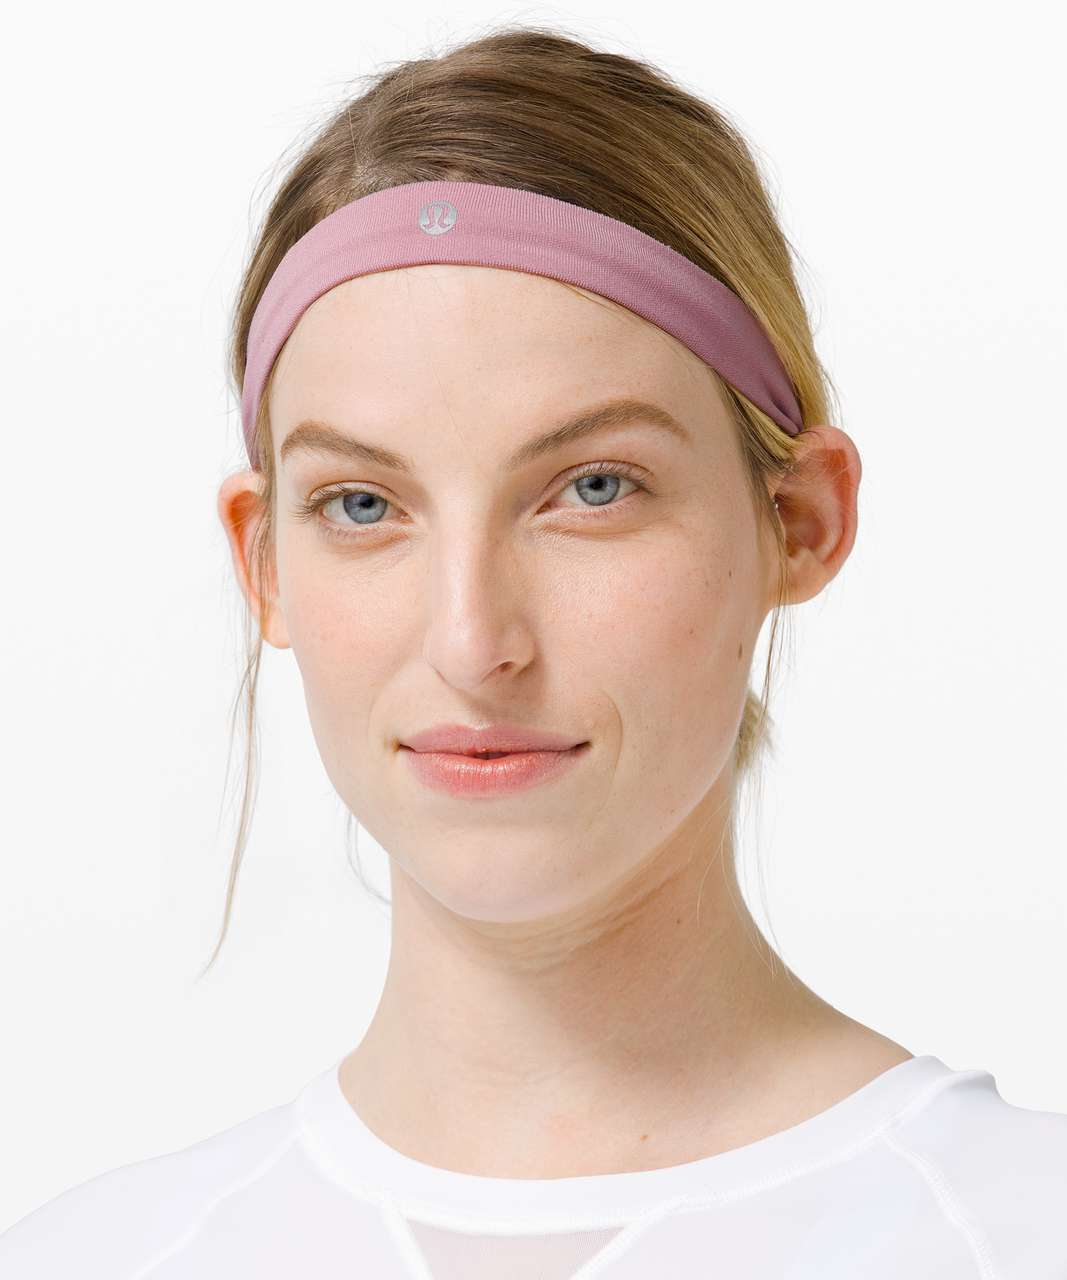 Lululemon Cardio Cross Trainer Headband - Pink Taupe / Ballet Slipper